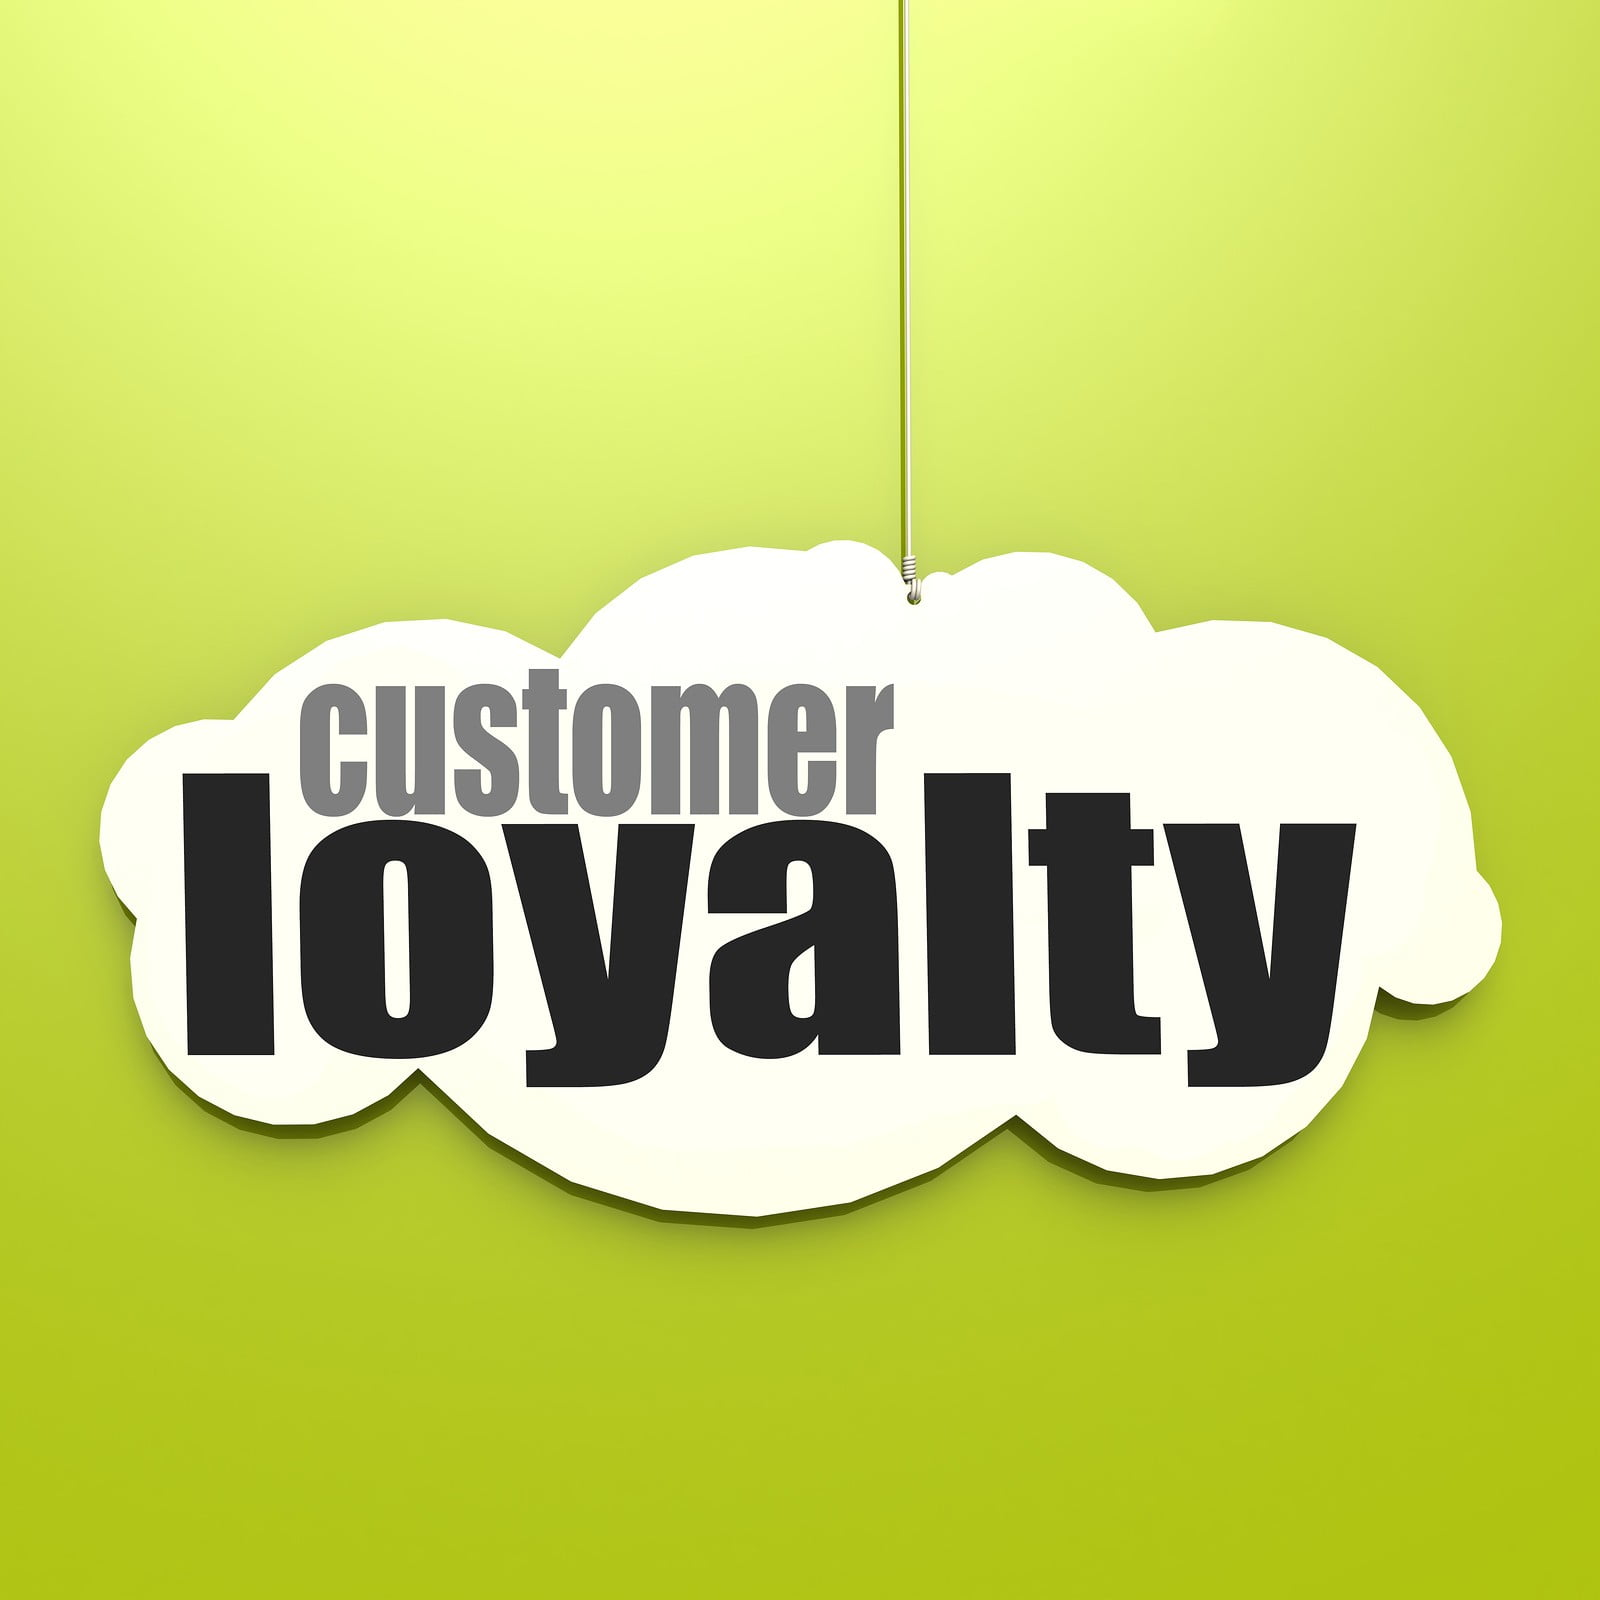 How Can a Business Improve Customer Loyalty?